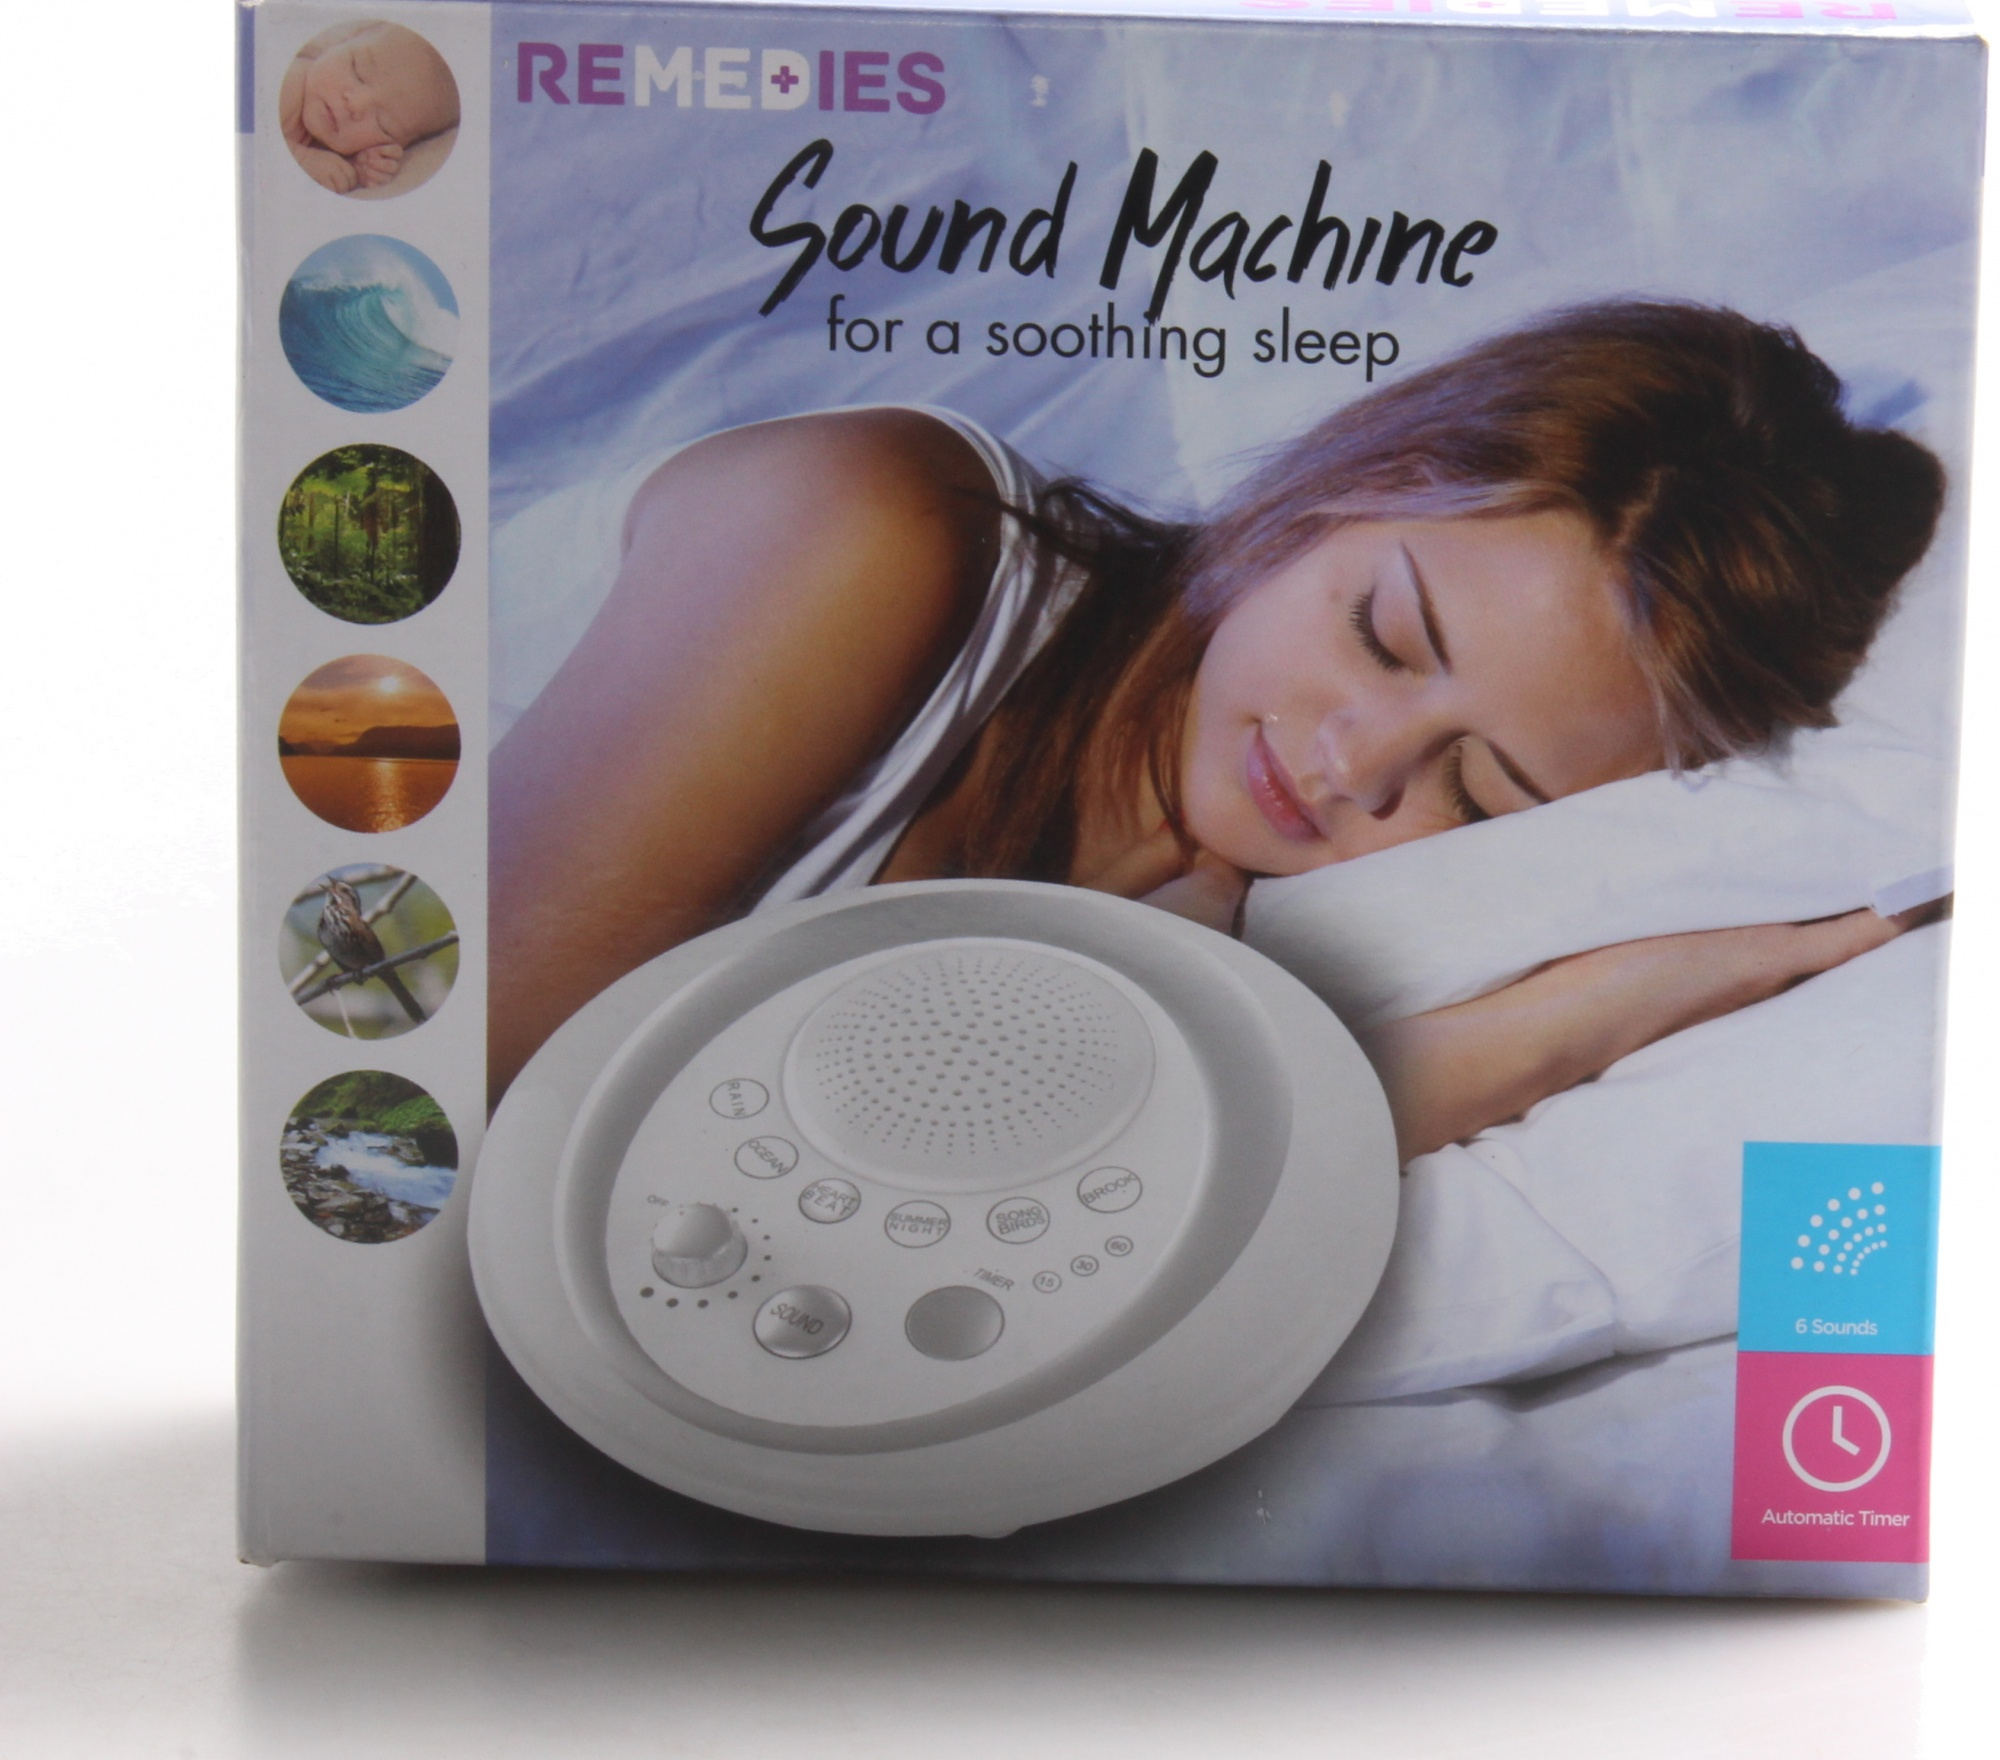 Haokaini Baby Sleep Soother Sound Machine Portable White Noise Sound Machine with 12 Soothing Sounds and 3 Timers Shusher for Traveling Sleeping Baby Carriage